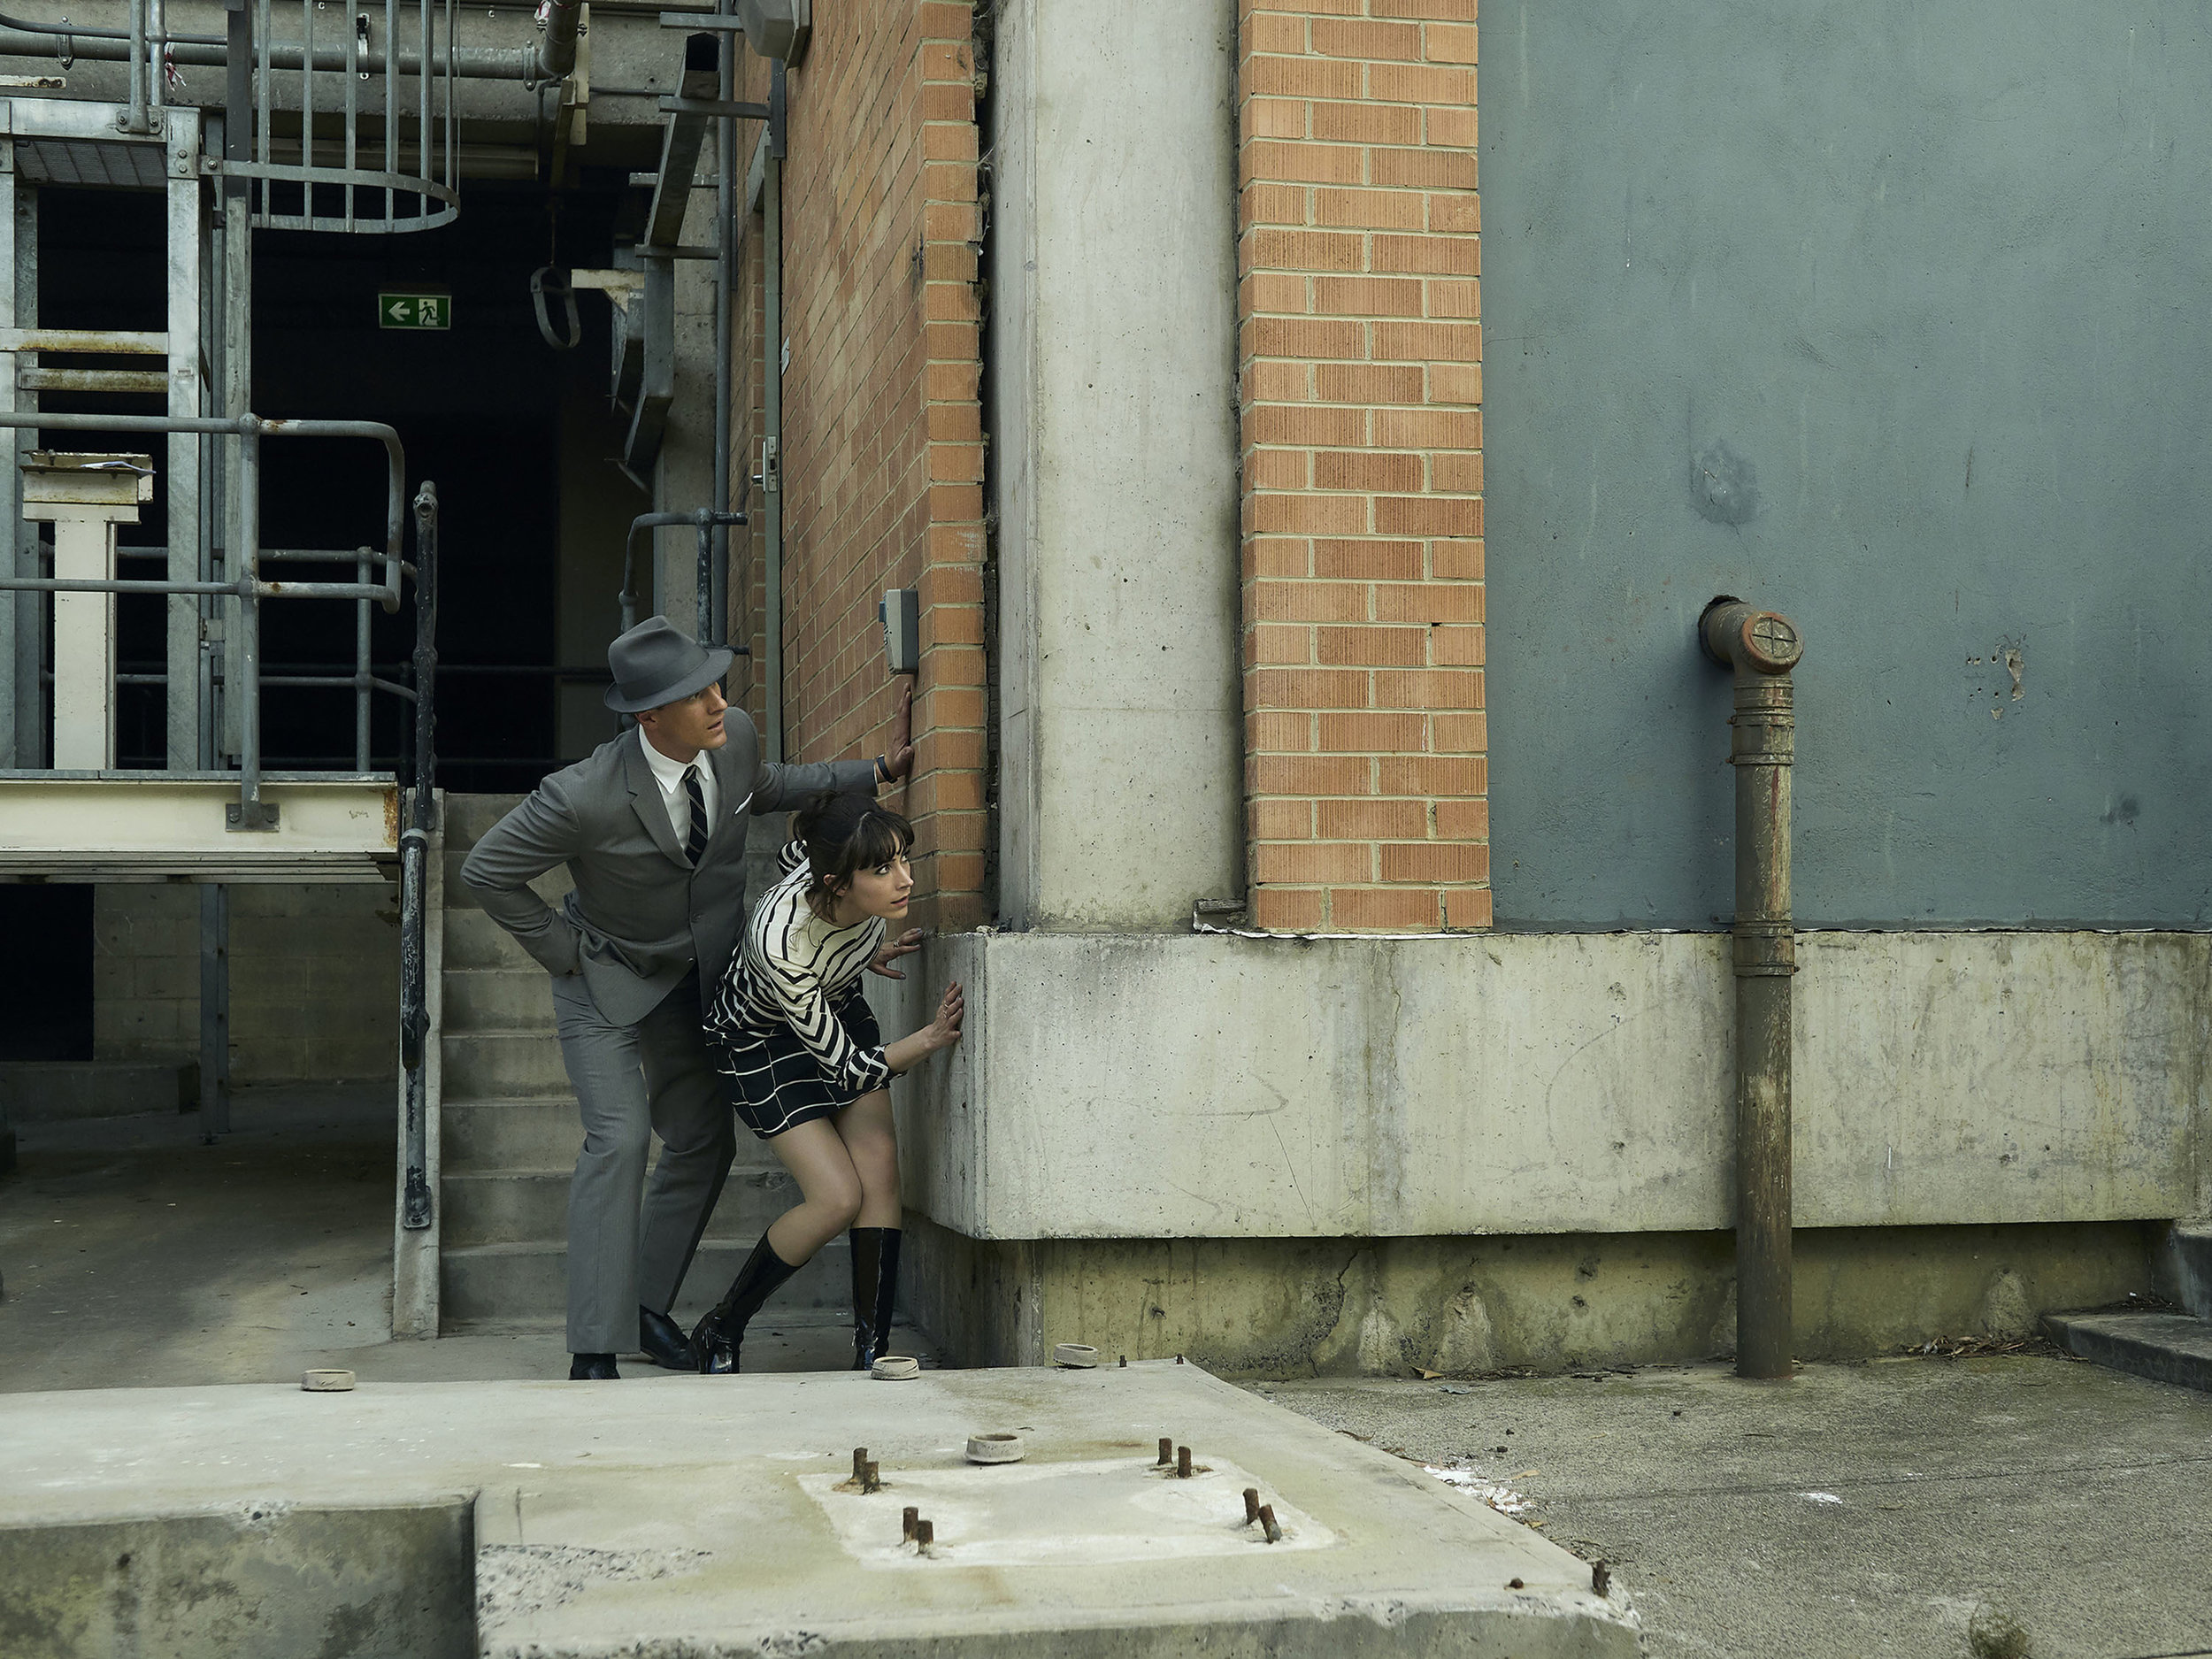 Joel Jackson as Detective James Steed and Geraldine Hakewill as Peregrine Fisher. ( Courtesy of Acorn TV )